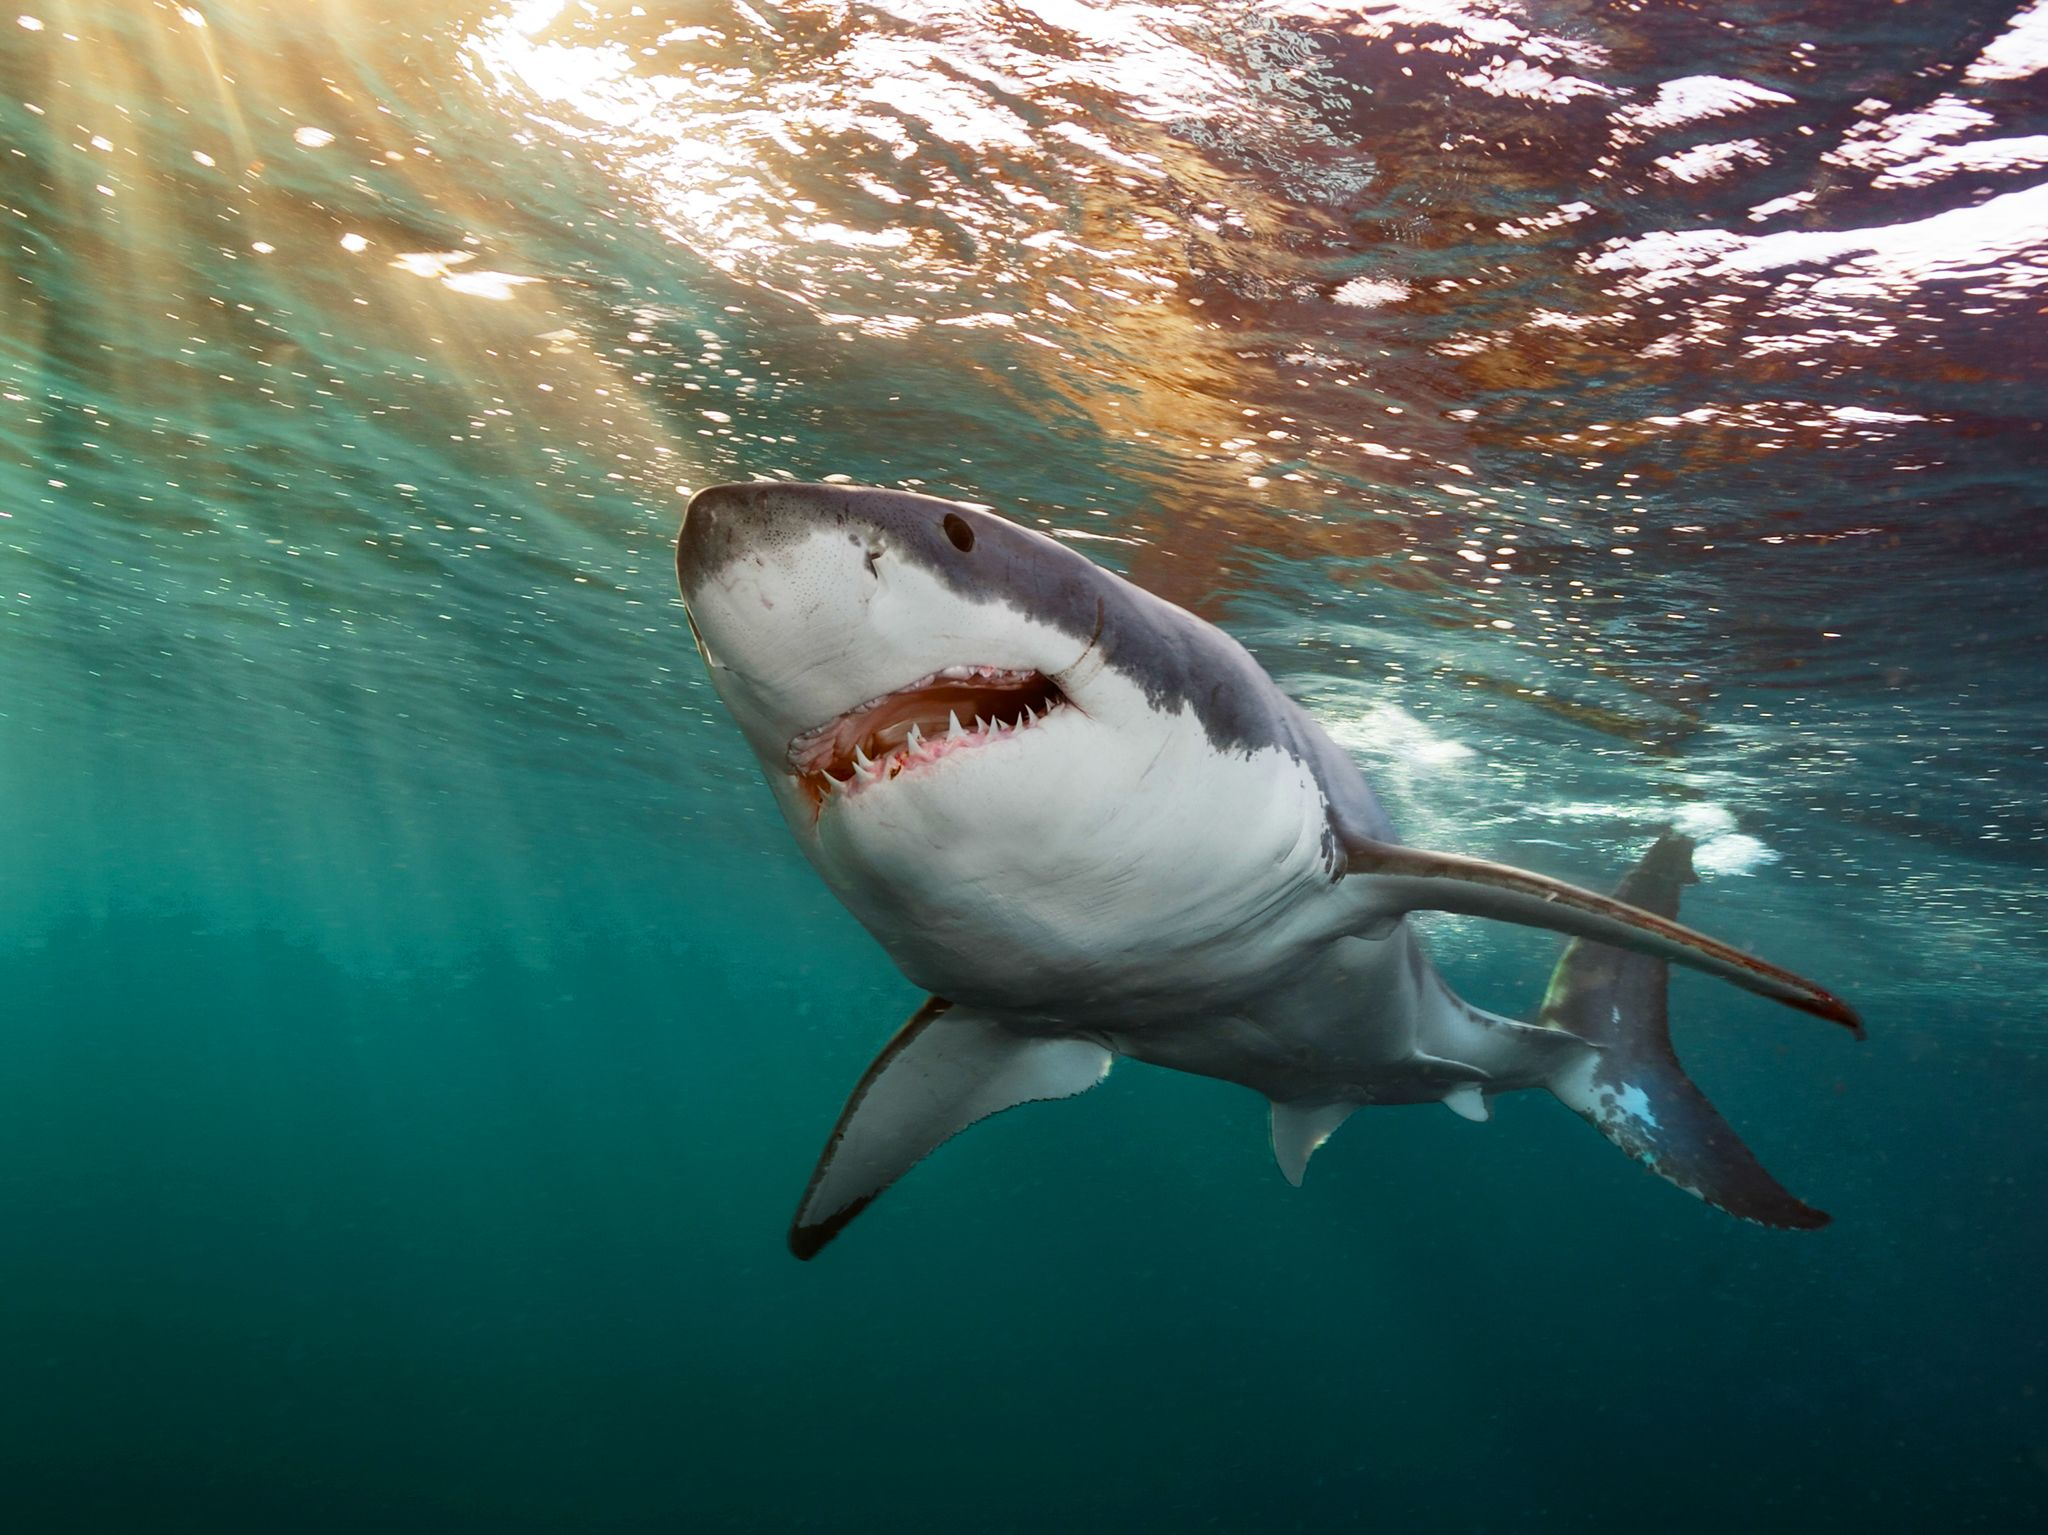 An Great White Shark. This image is from Mission Critical: Animal Avengers. [Photo of the day - January 2018]